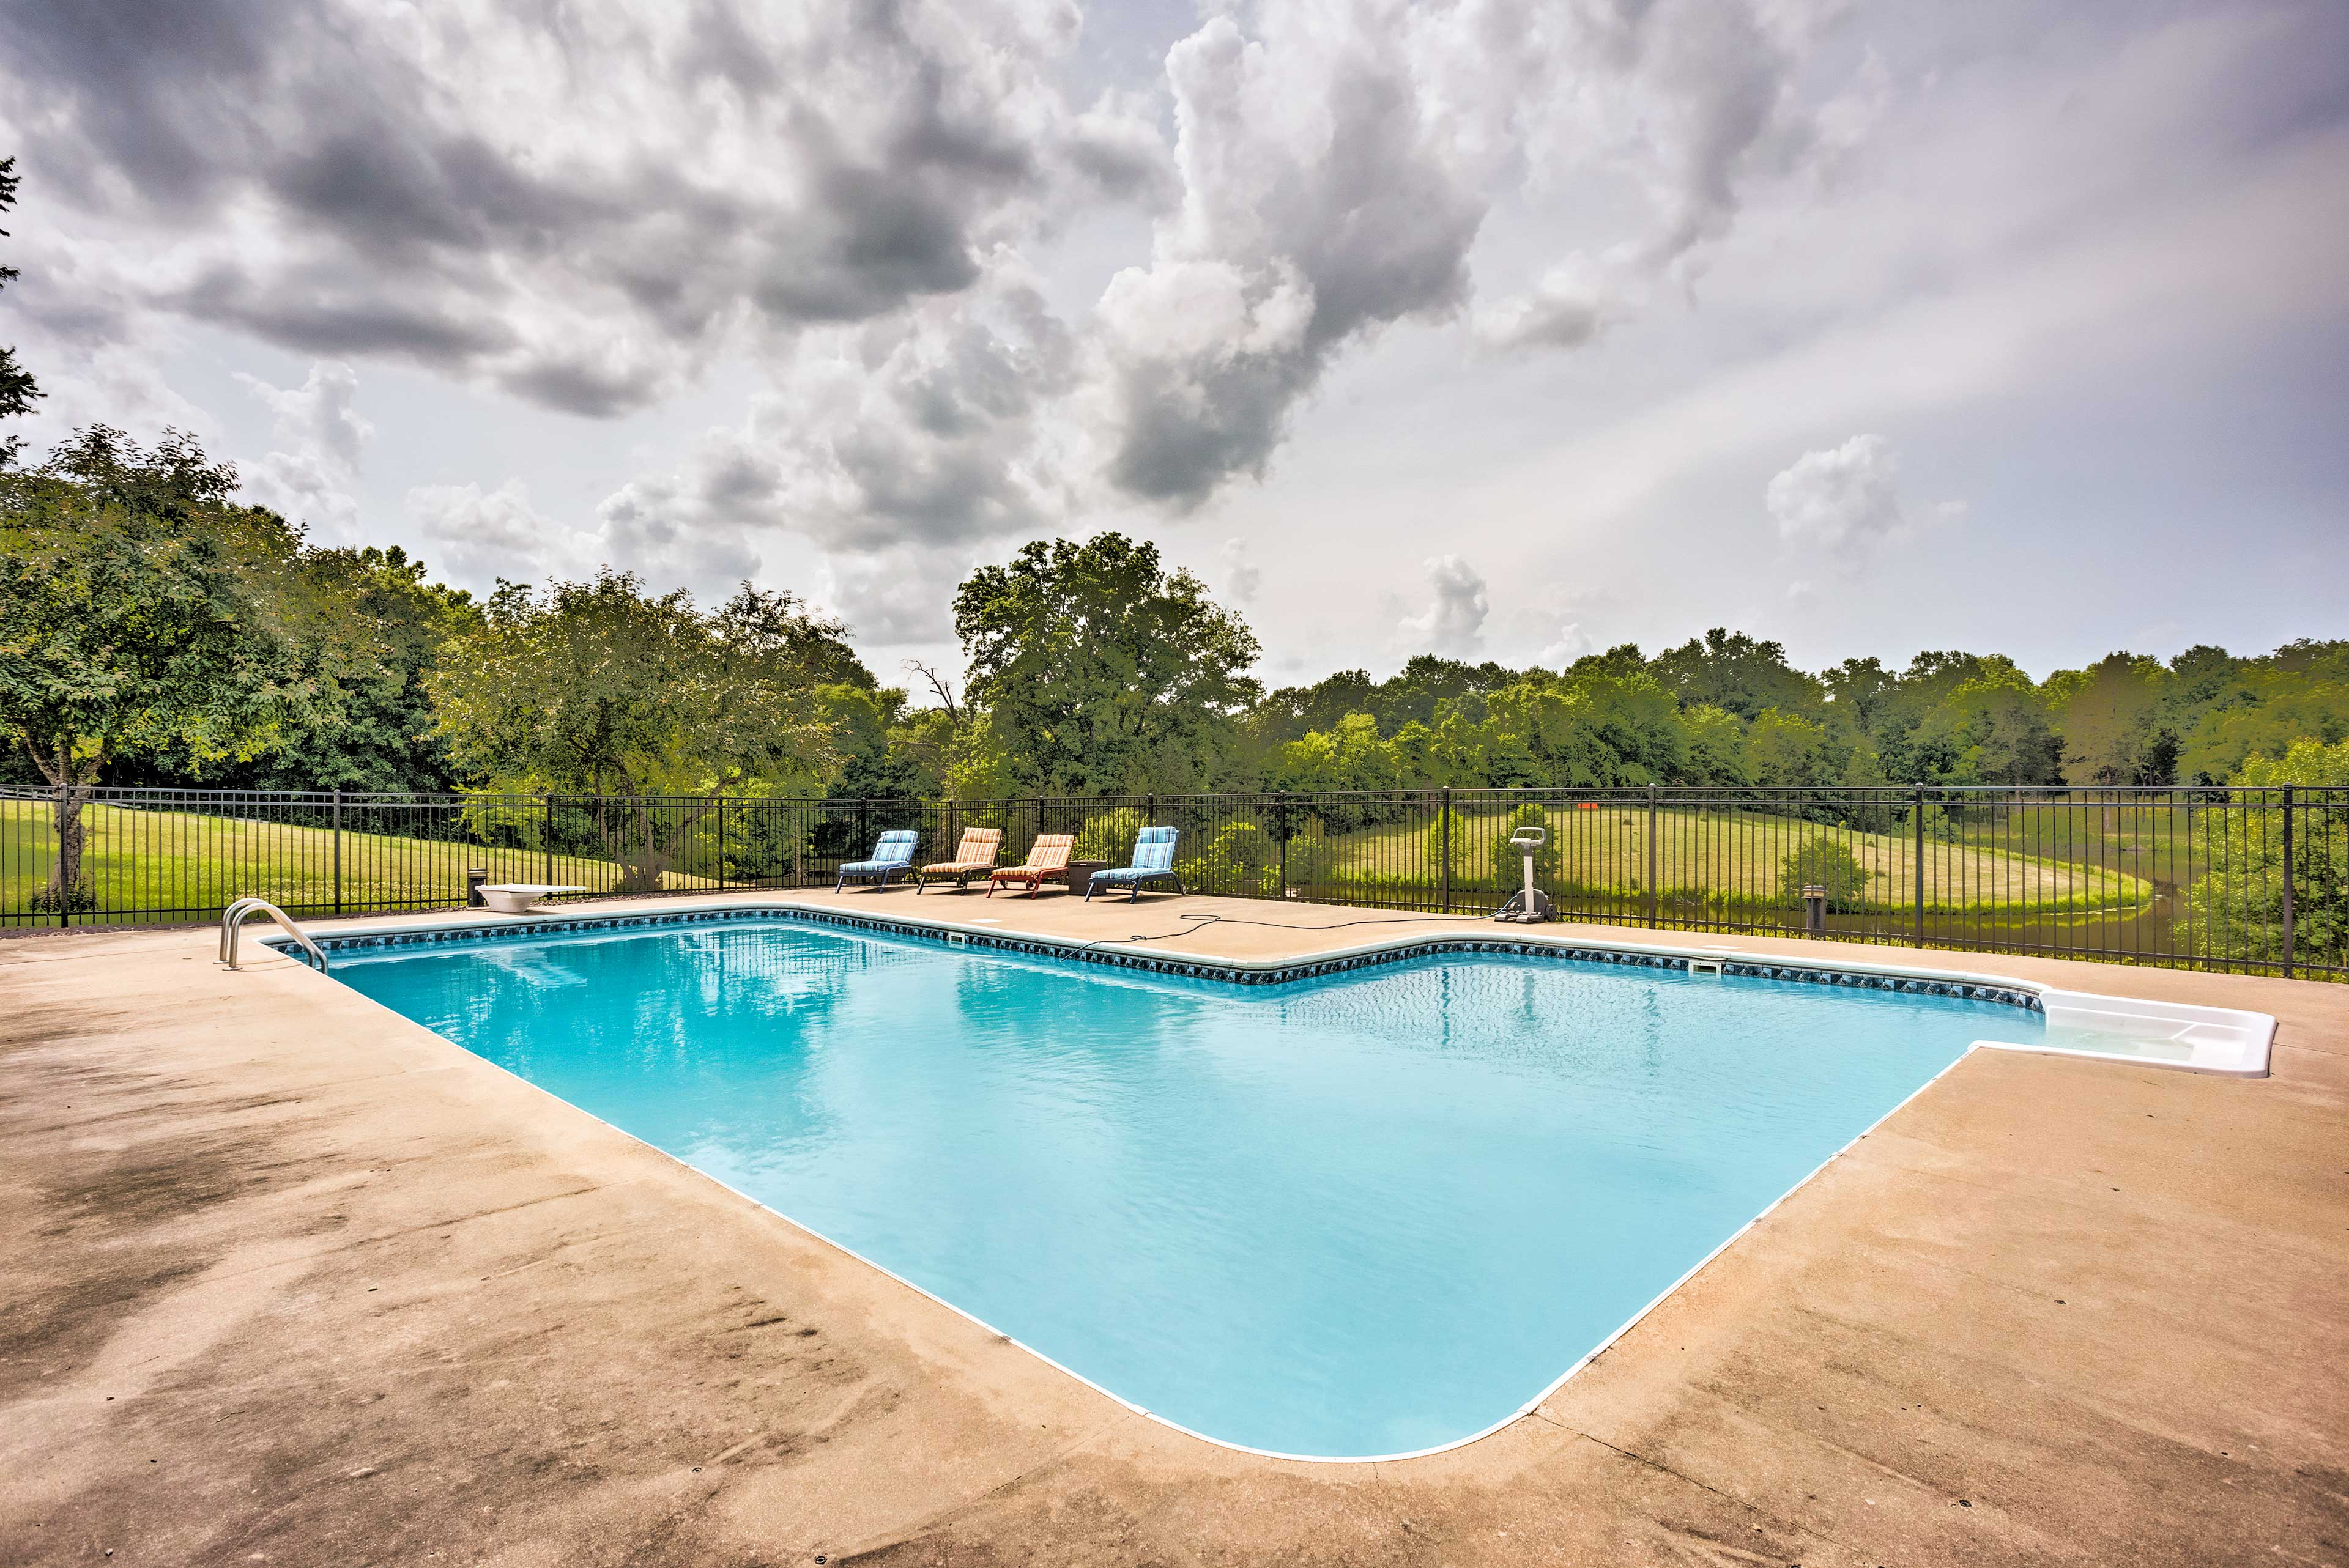 The property also boasts an in-ground swimming pool!